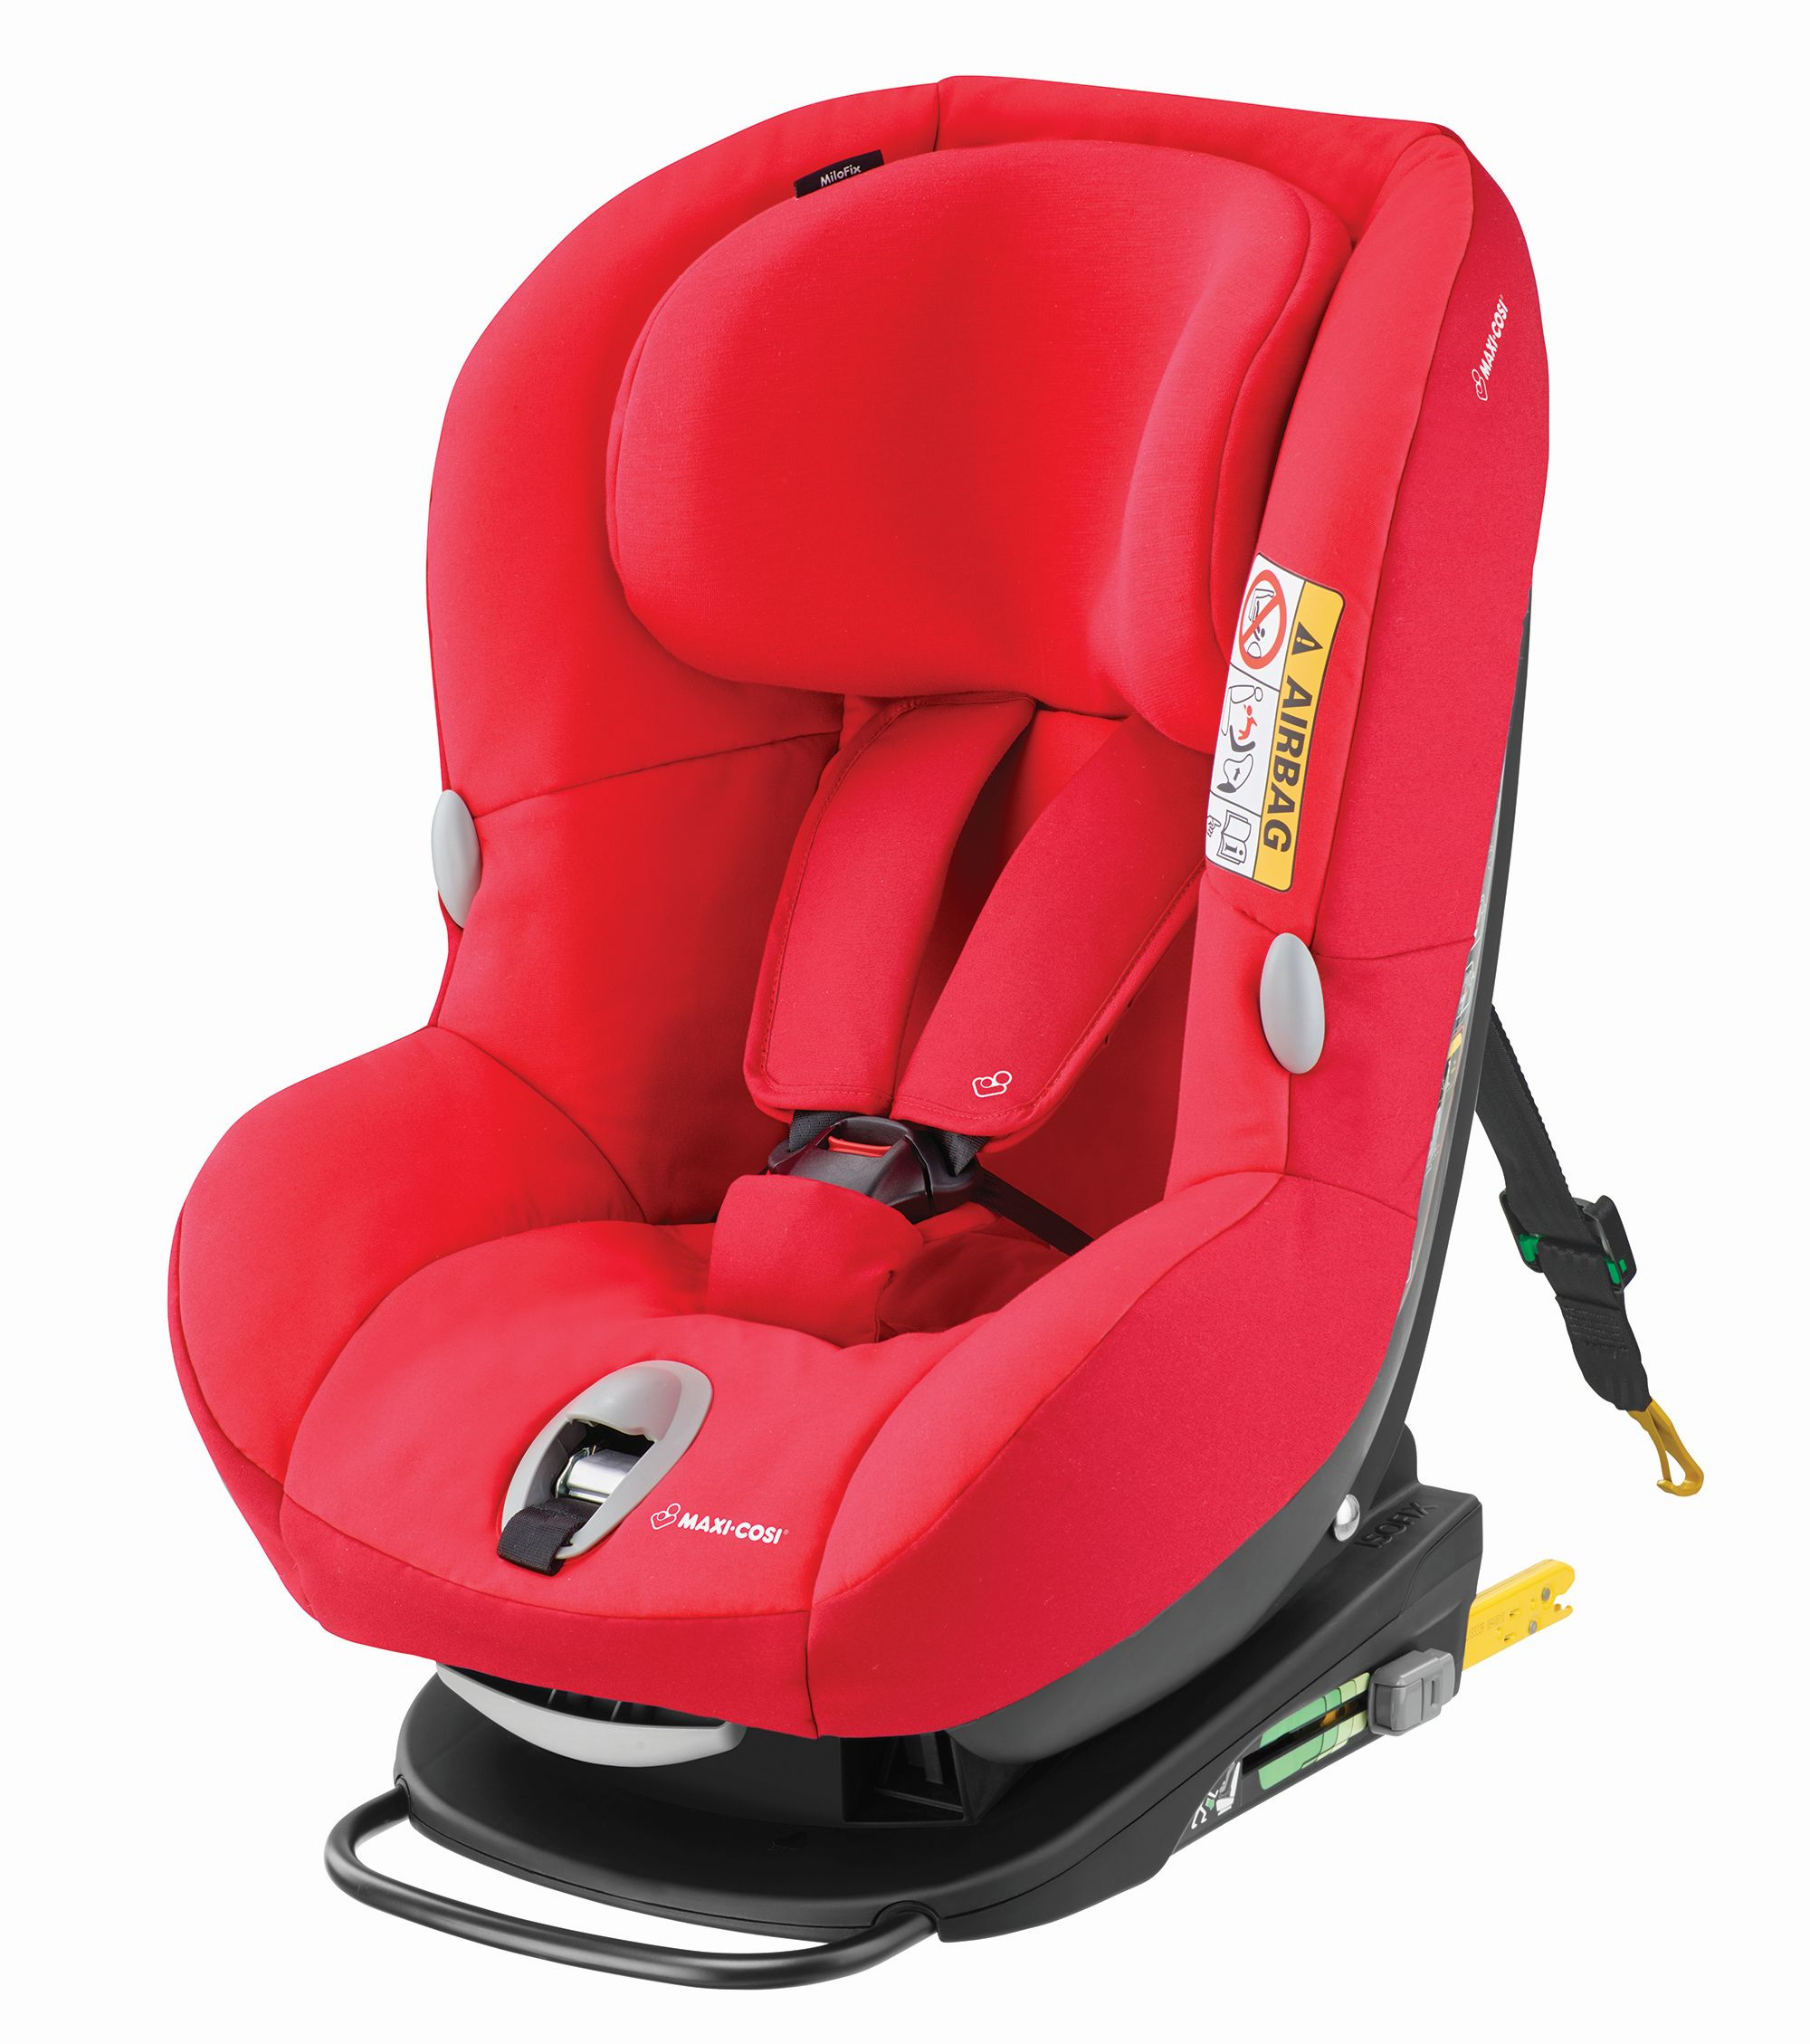 maxi cosi child car seat milofix 2018 vivid red buy at kidsroom car seats isofix child car. Black Bedroom Furniture Sets. Home Design Ideas